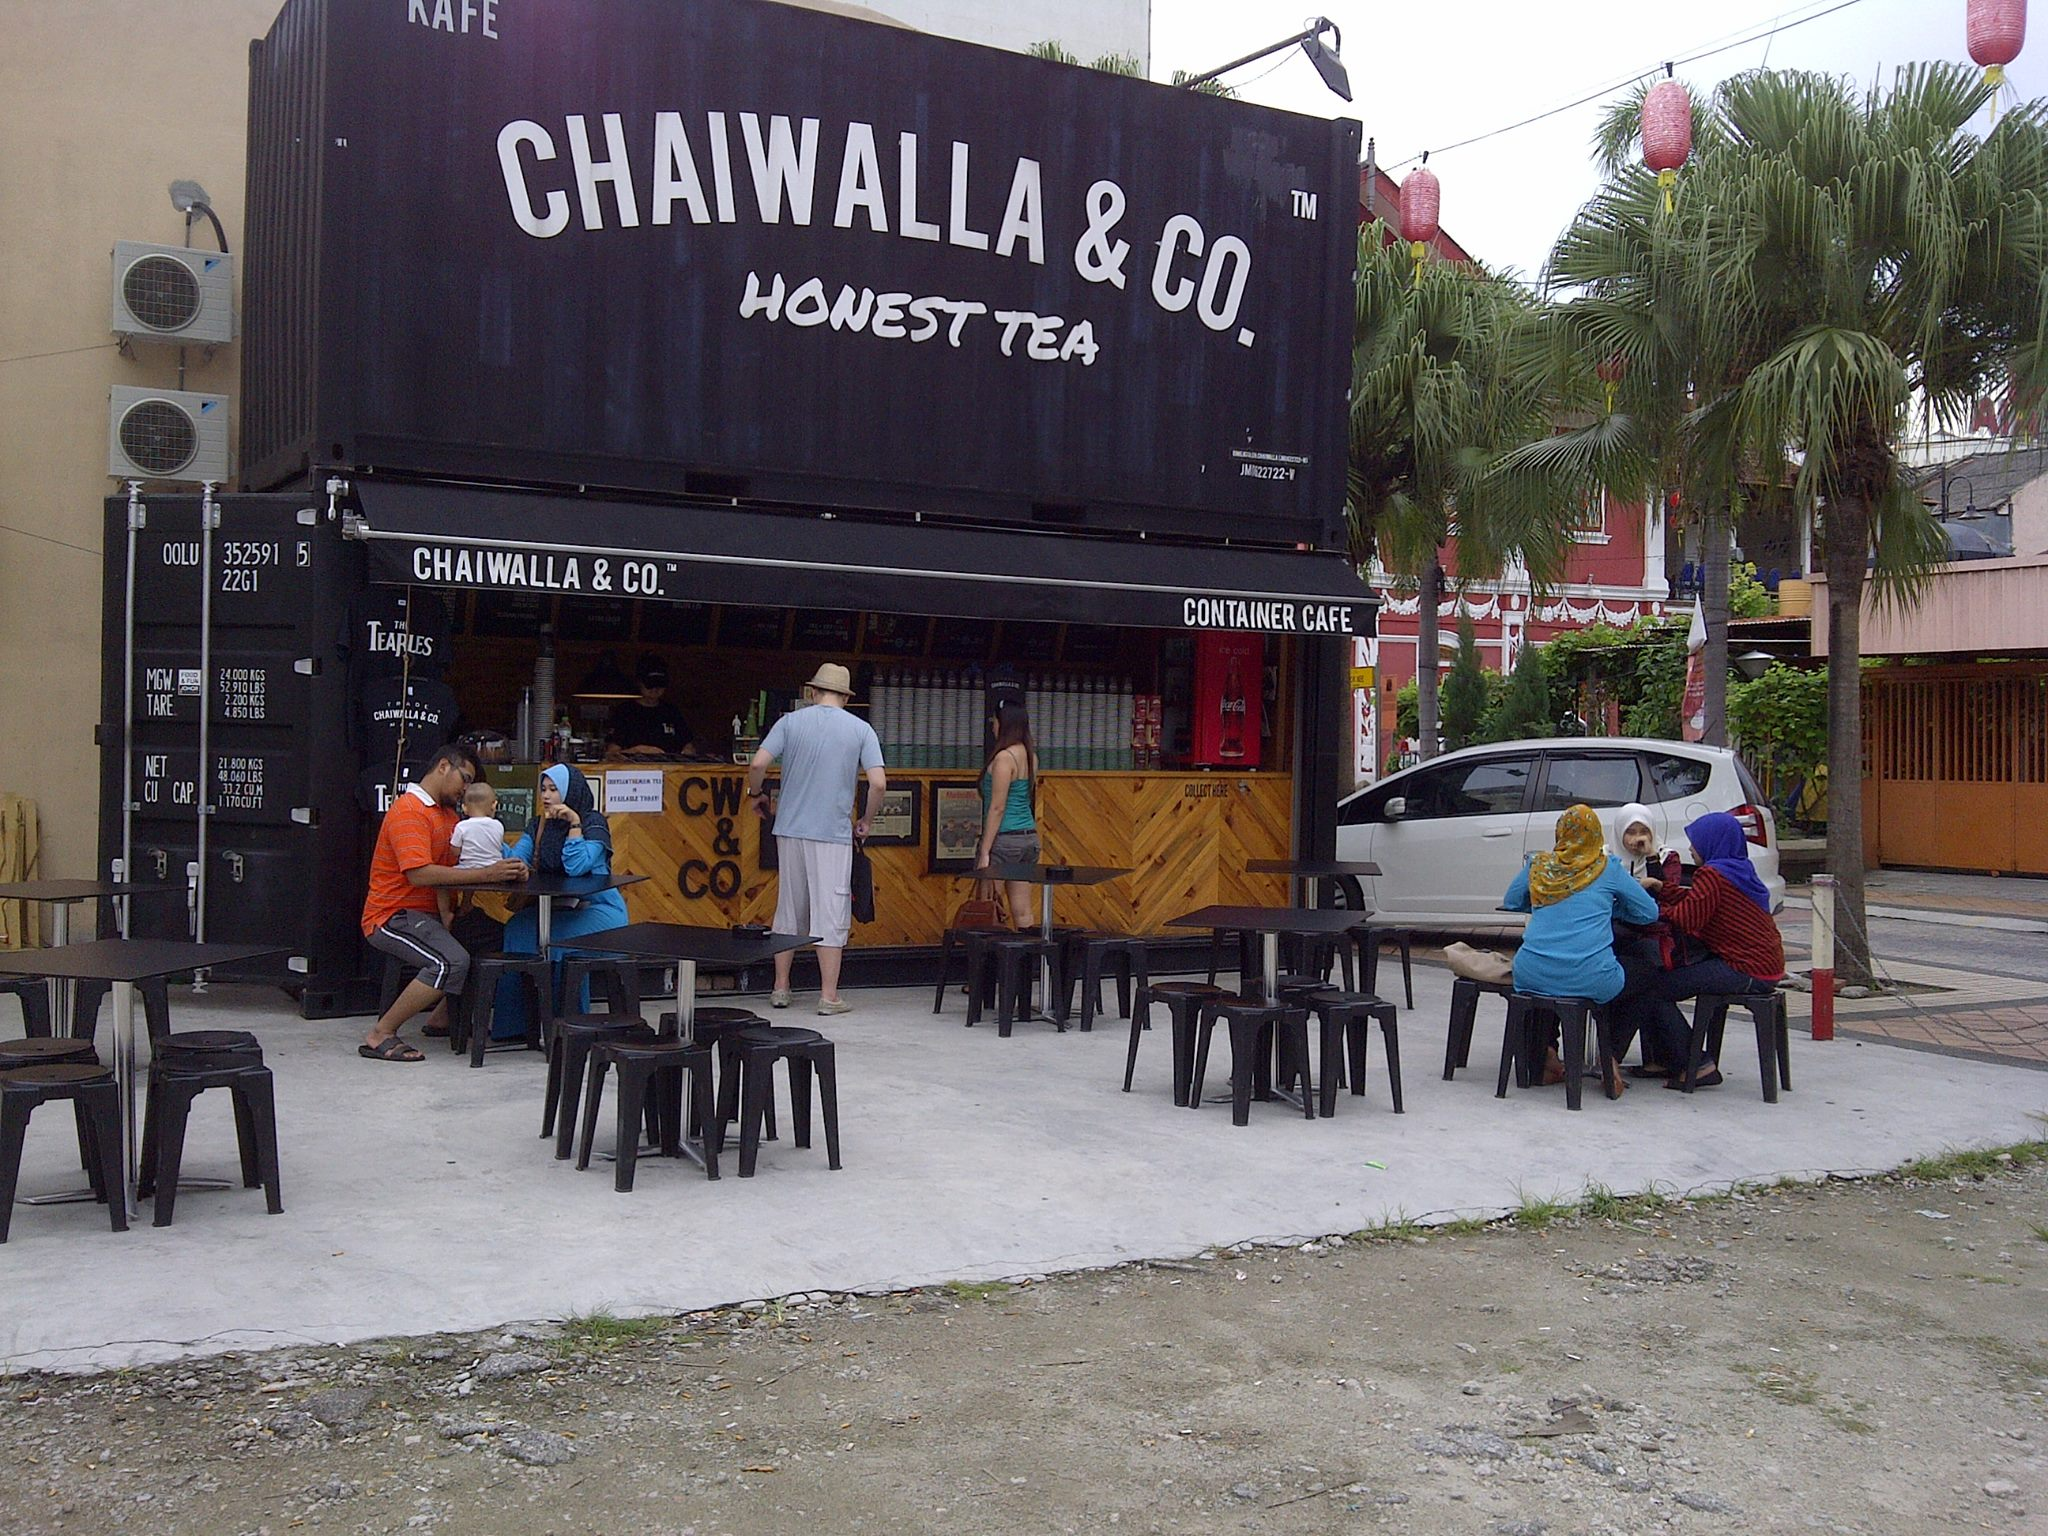 Image from Facebook Chaiwalla & Co. Container Cafe